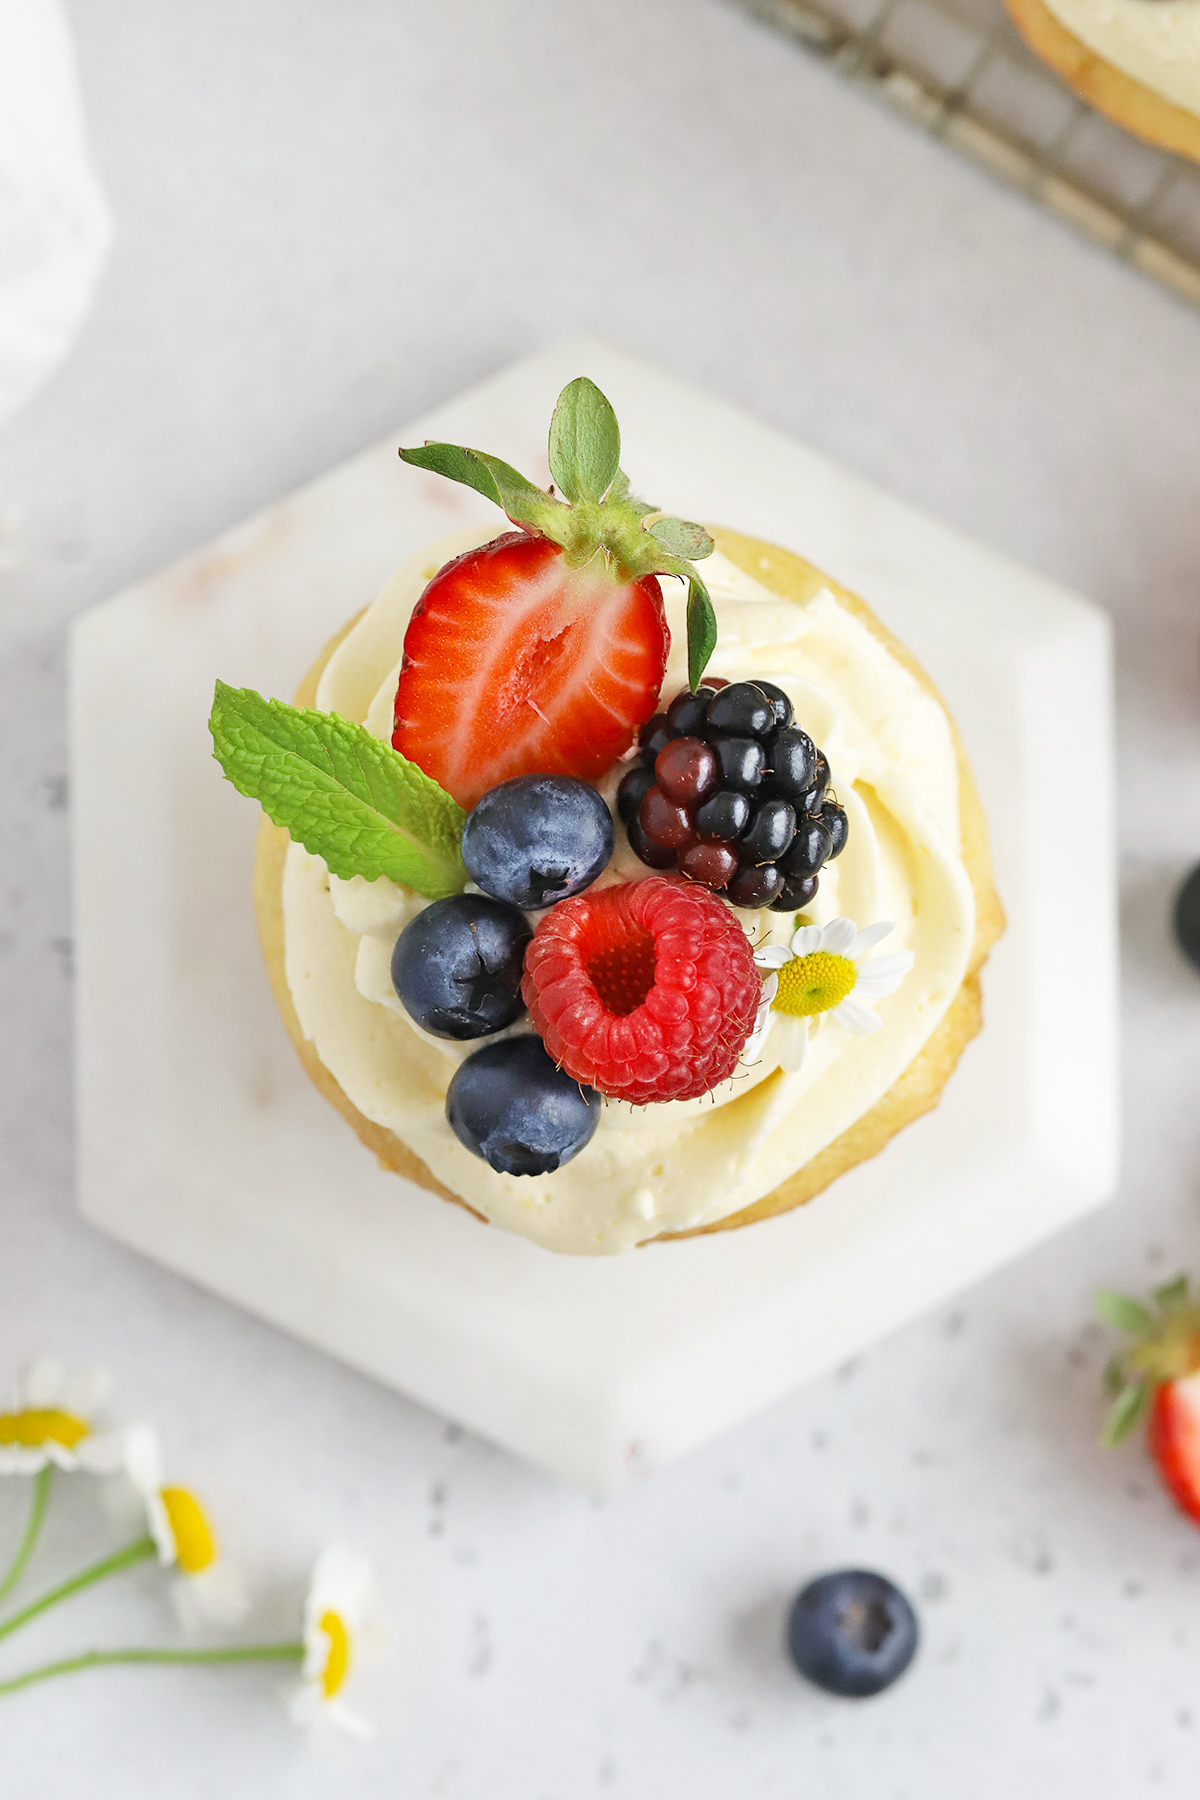 Overhead view of a gluten-free lemon cupcake with lemon frosting, fresh berries, and edible flowers on a white background